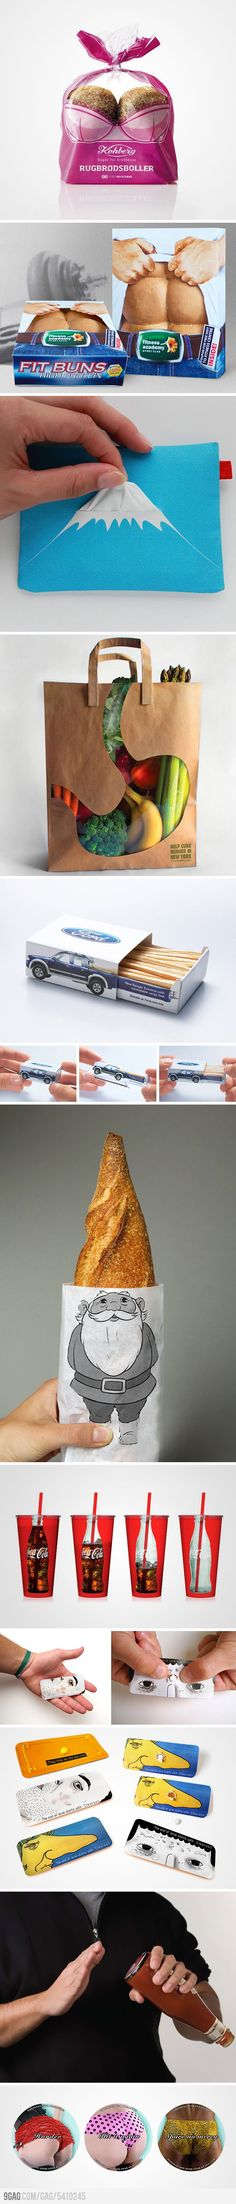 Funny packaging